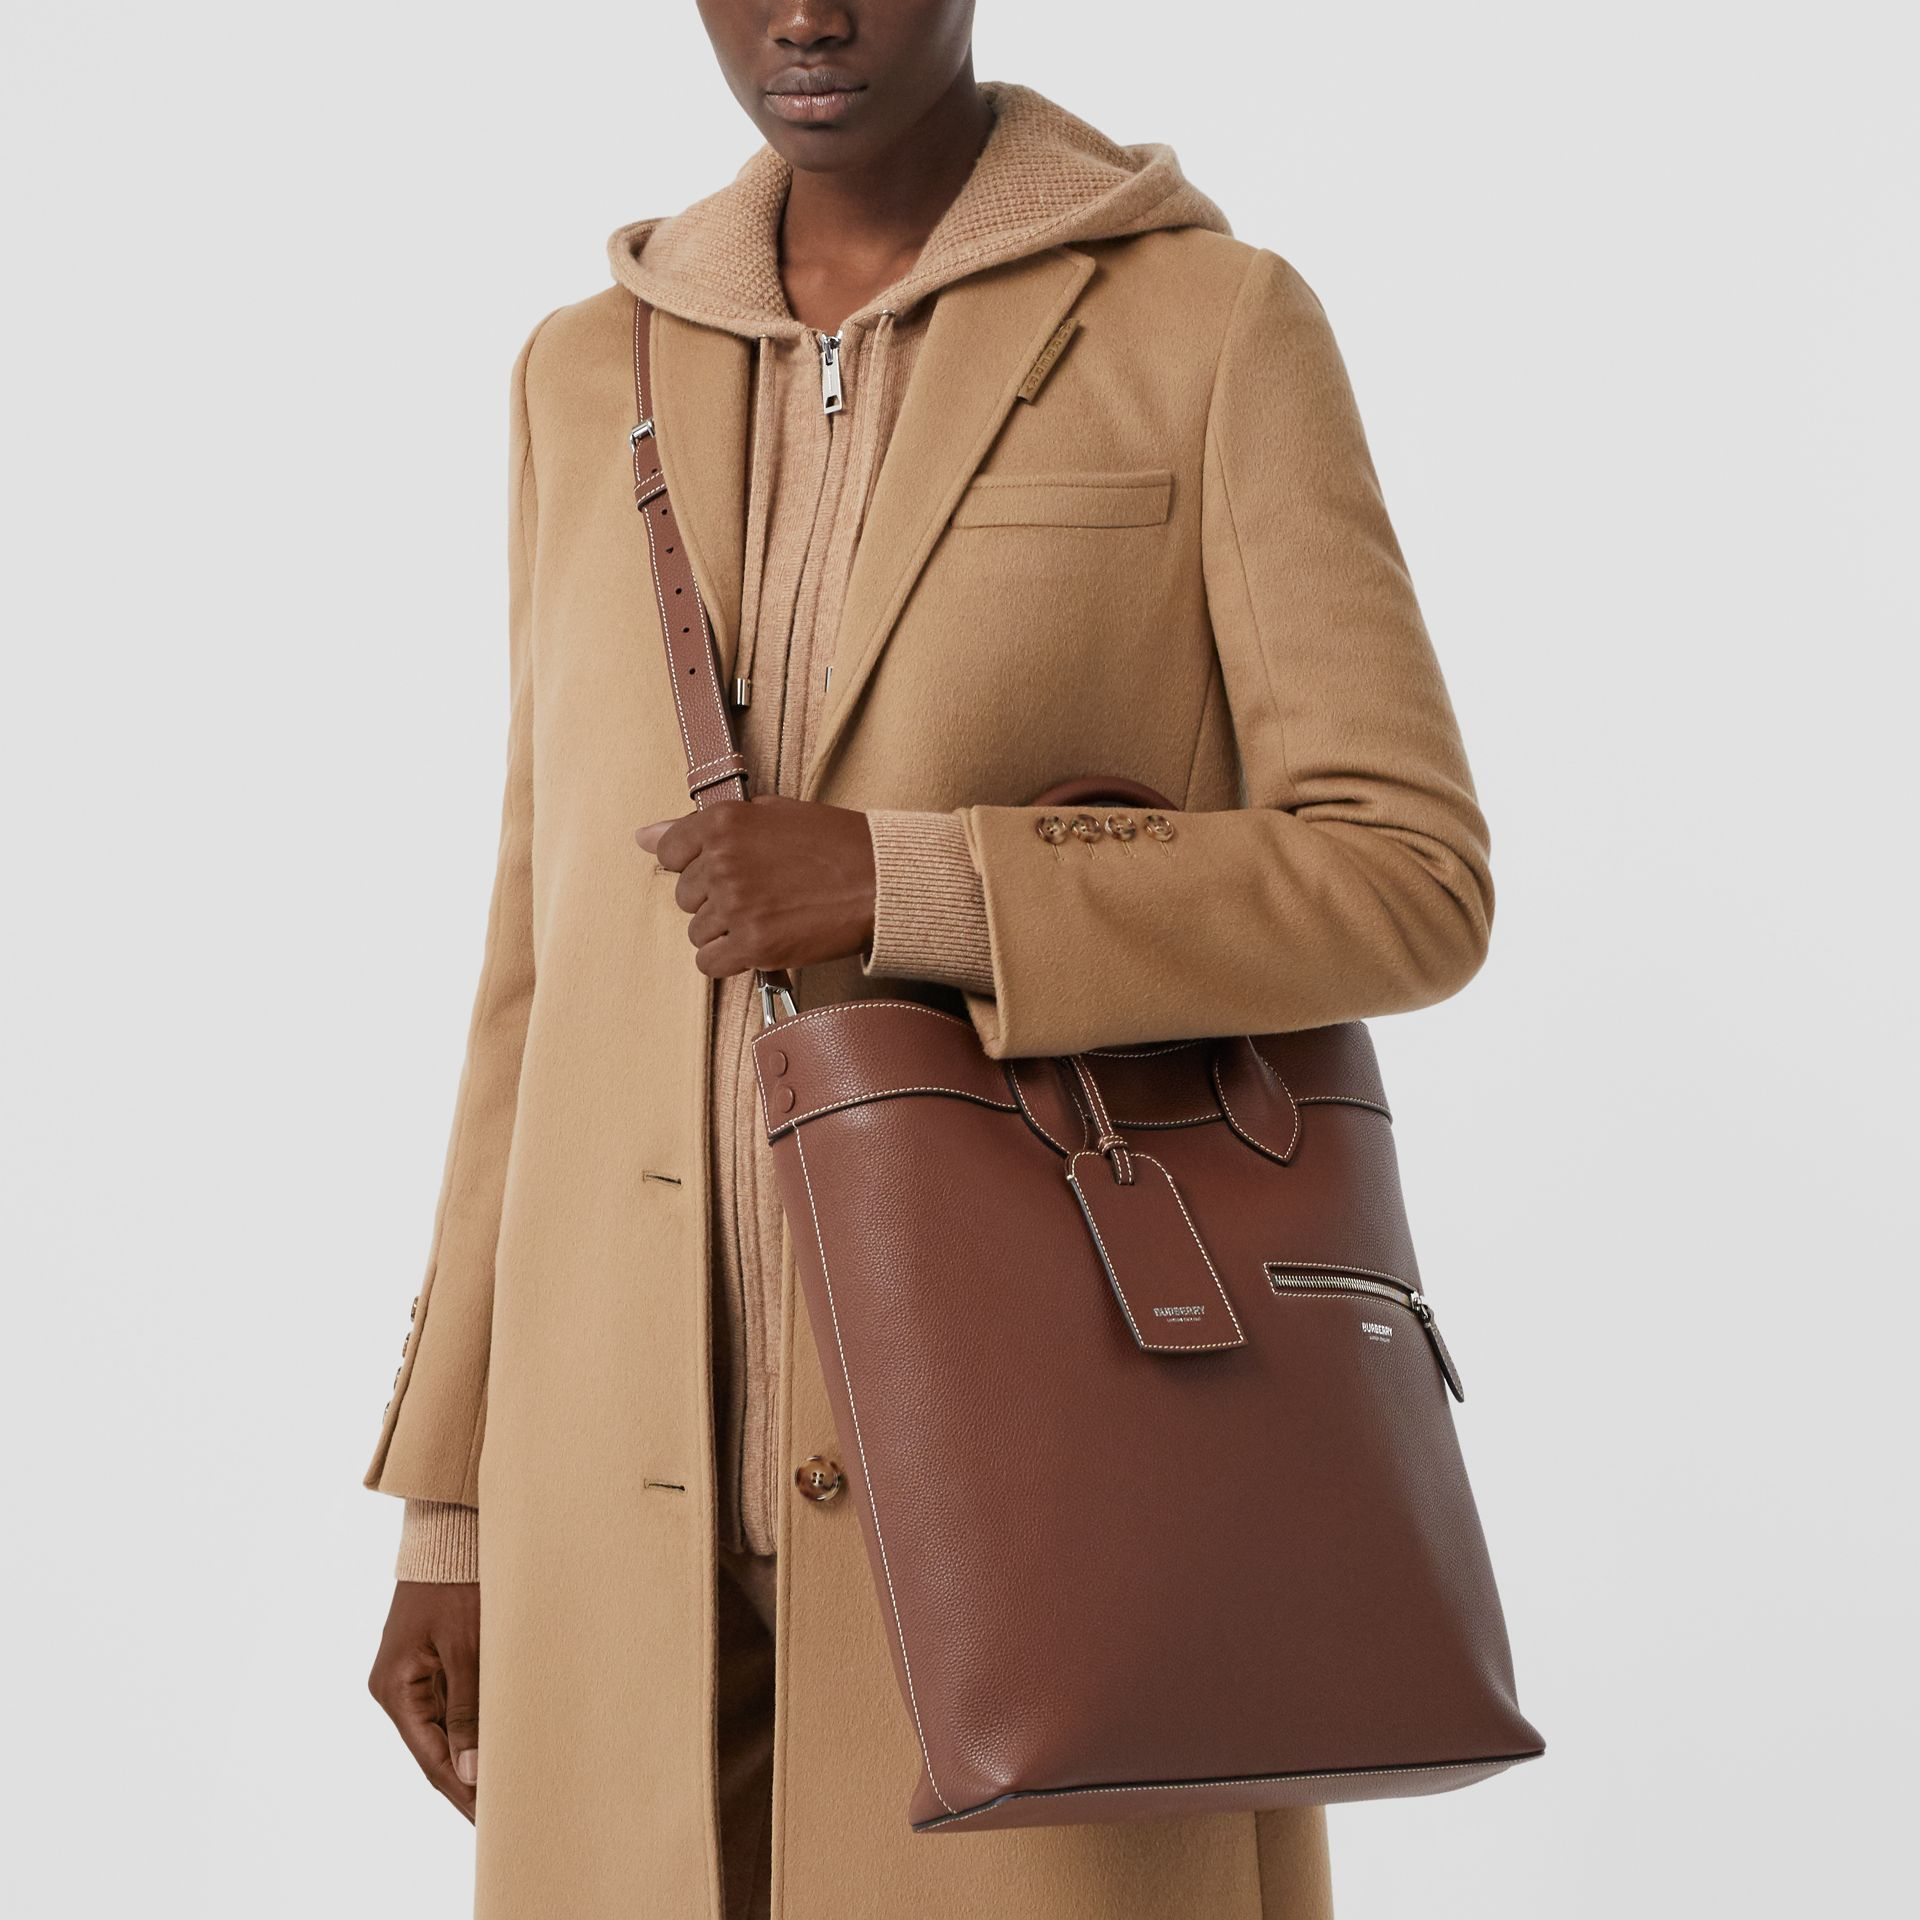 Grainy Leather Tote in Tan | Burberry - gallery image 10